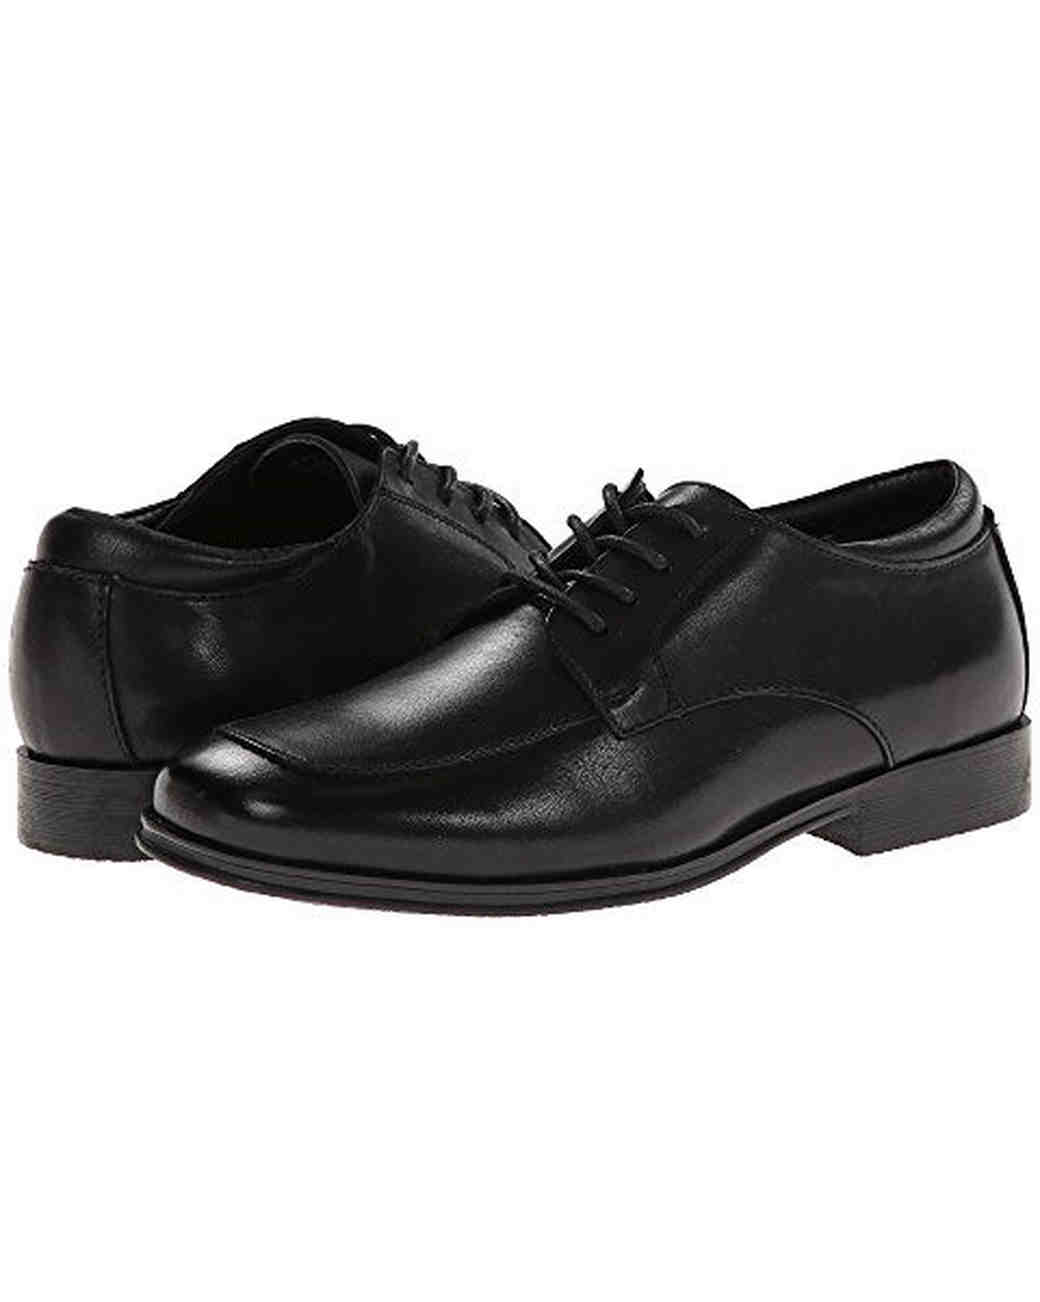 black ring bearer shoes